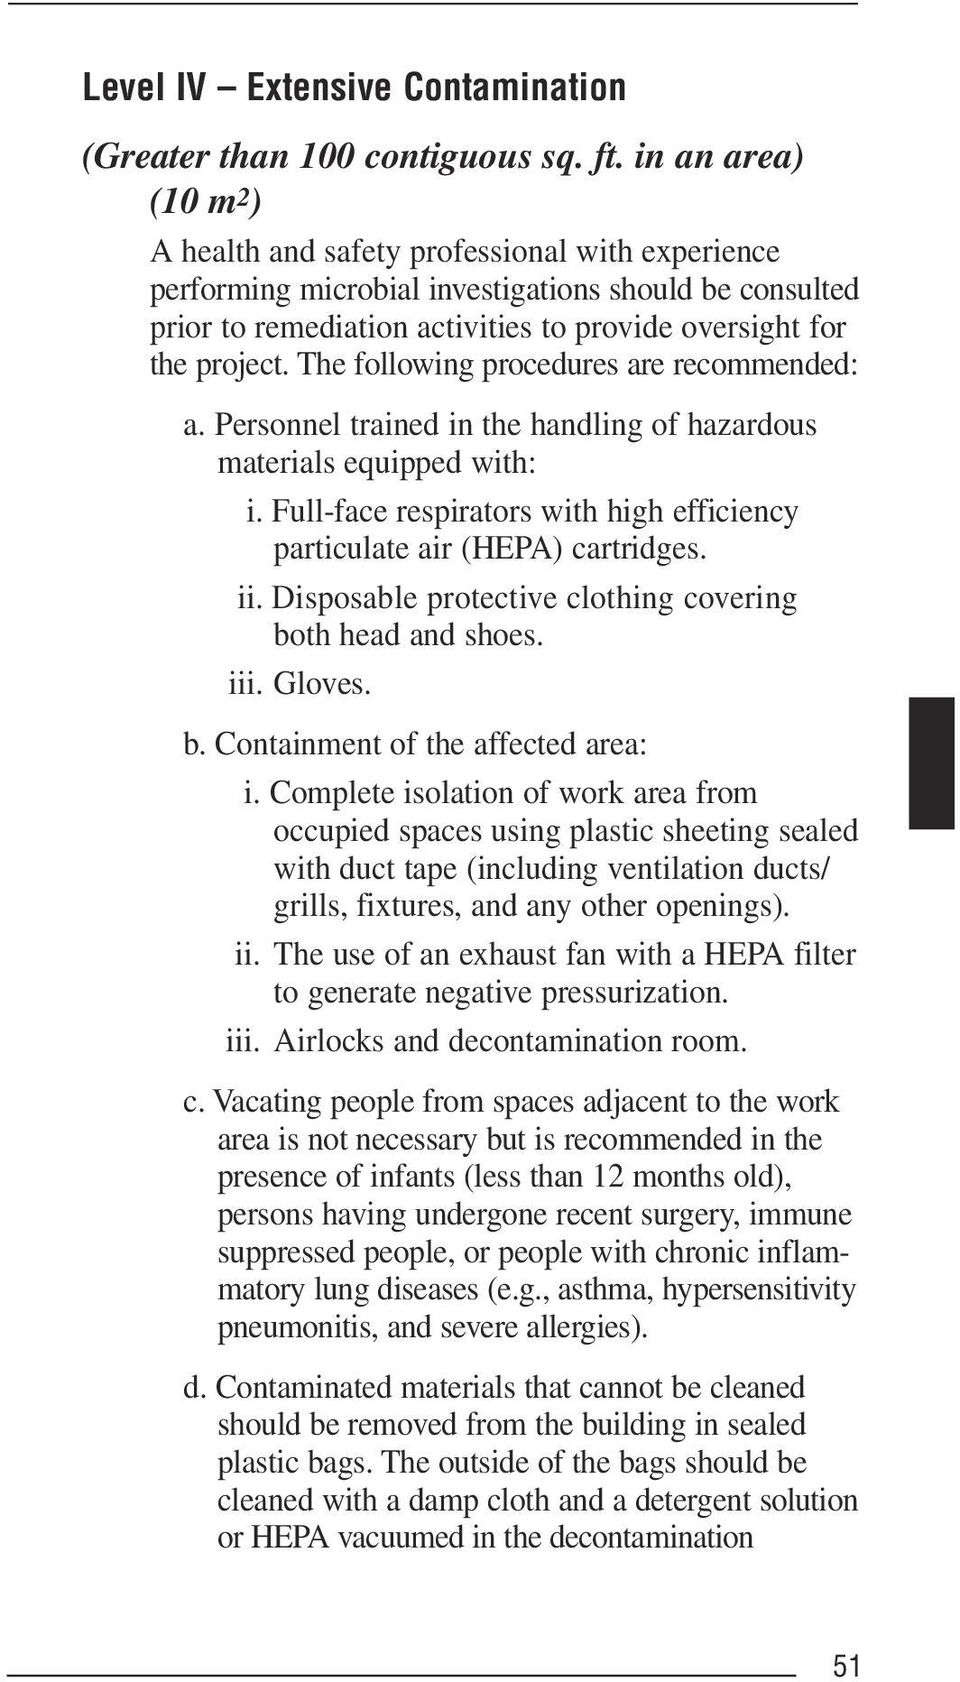 The following procedures are recommended: a. Personnel trained in the handling of hazardous materials equipped with: i. Full-face respirators with high efficiency particulate air (HEPA) cartridges.